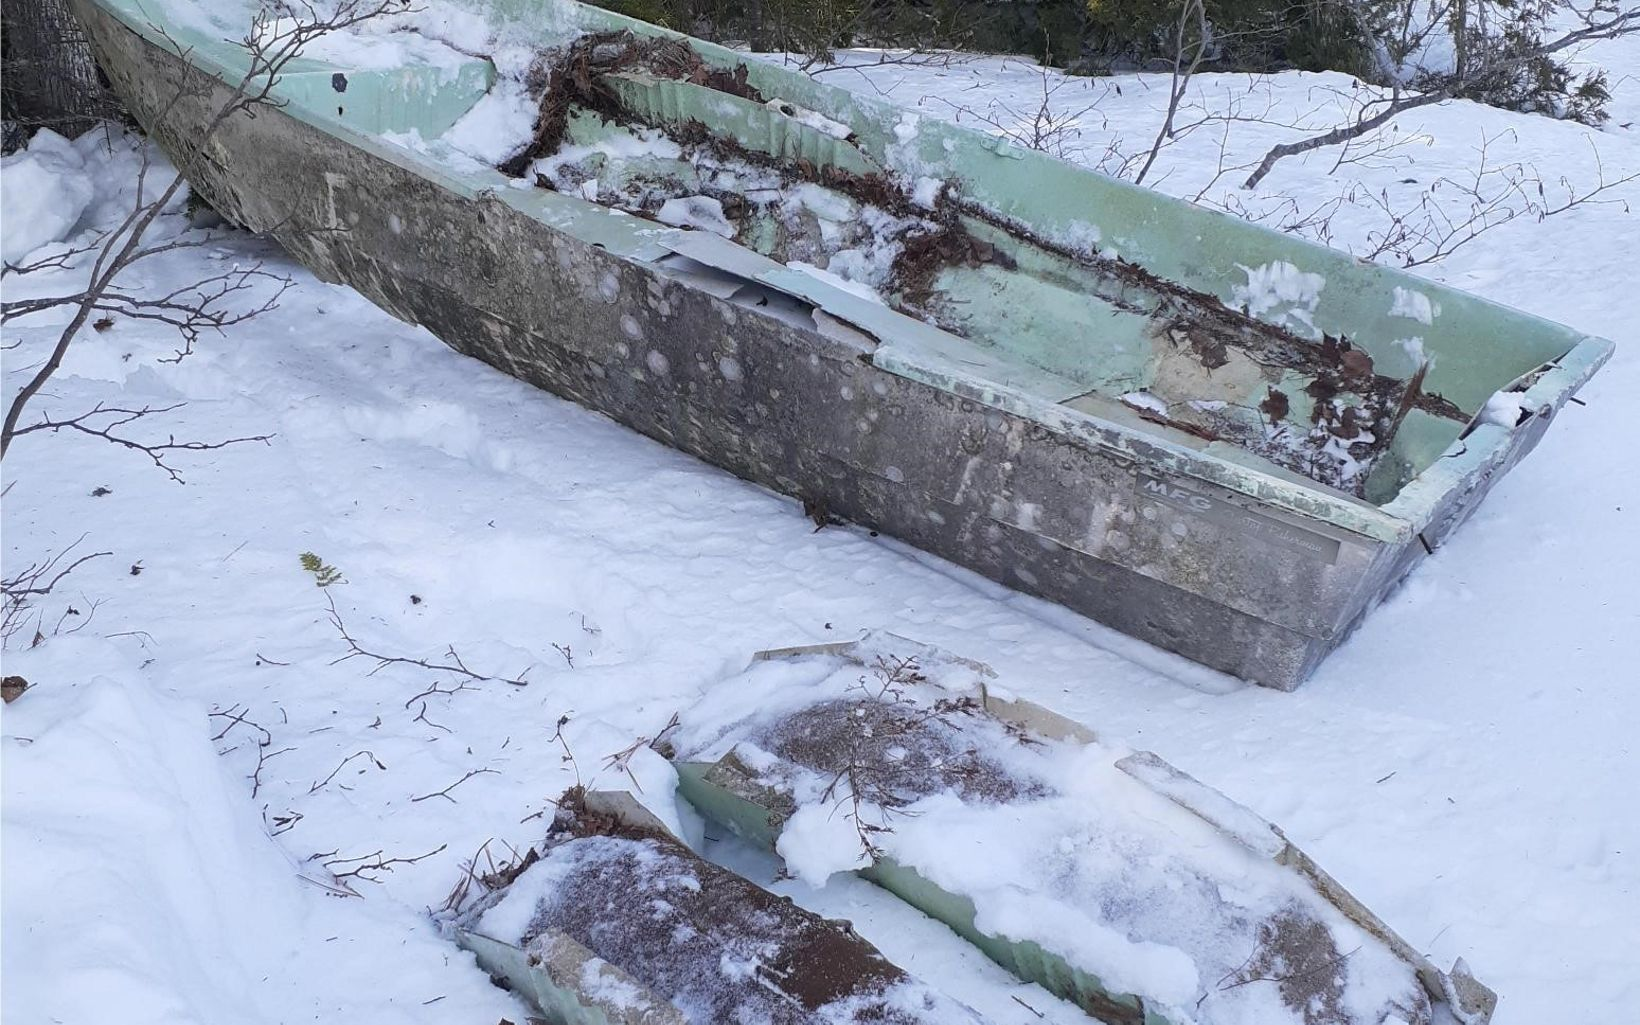 The remains of an old rotting boat lie in the snow.